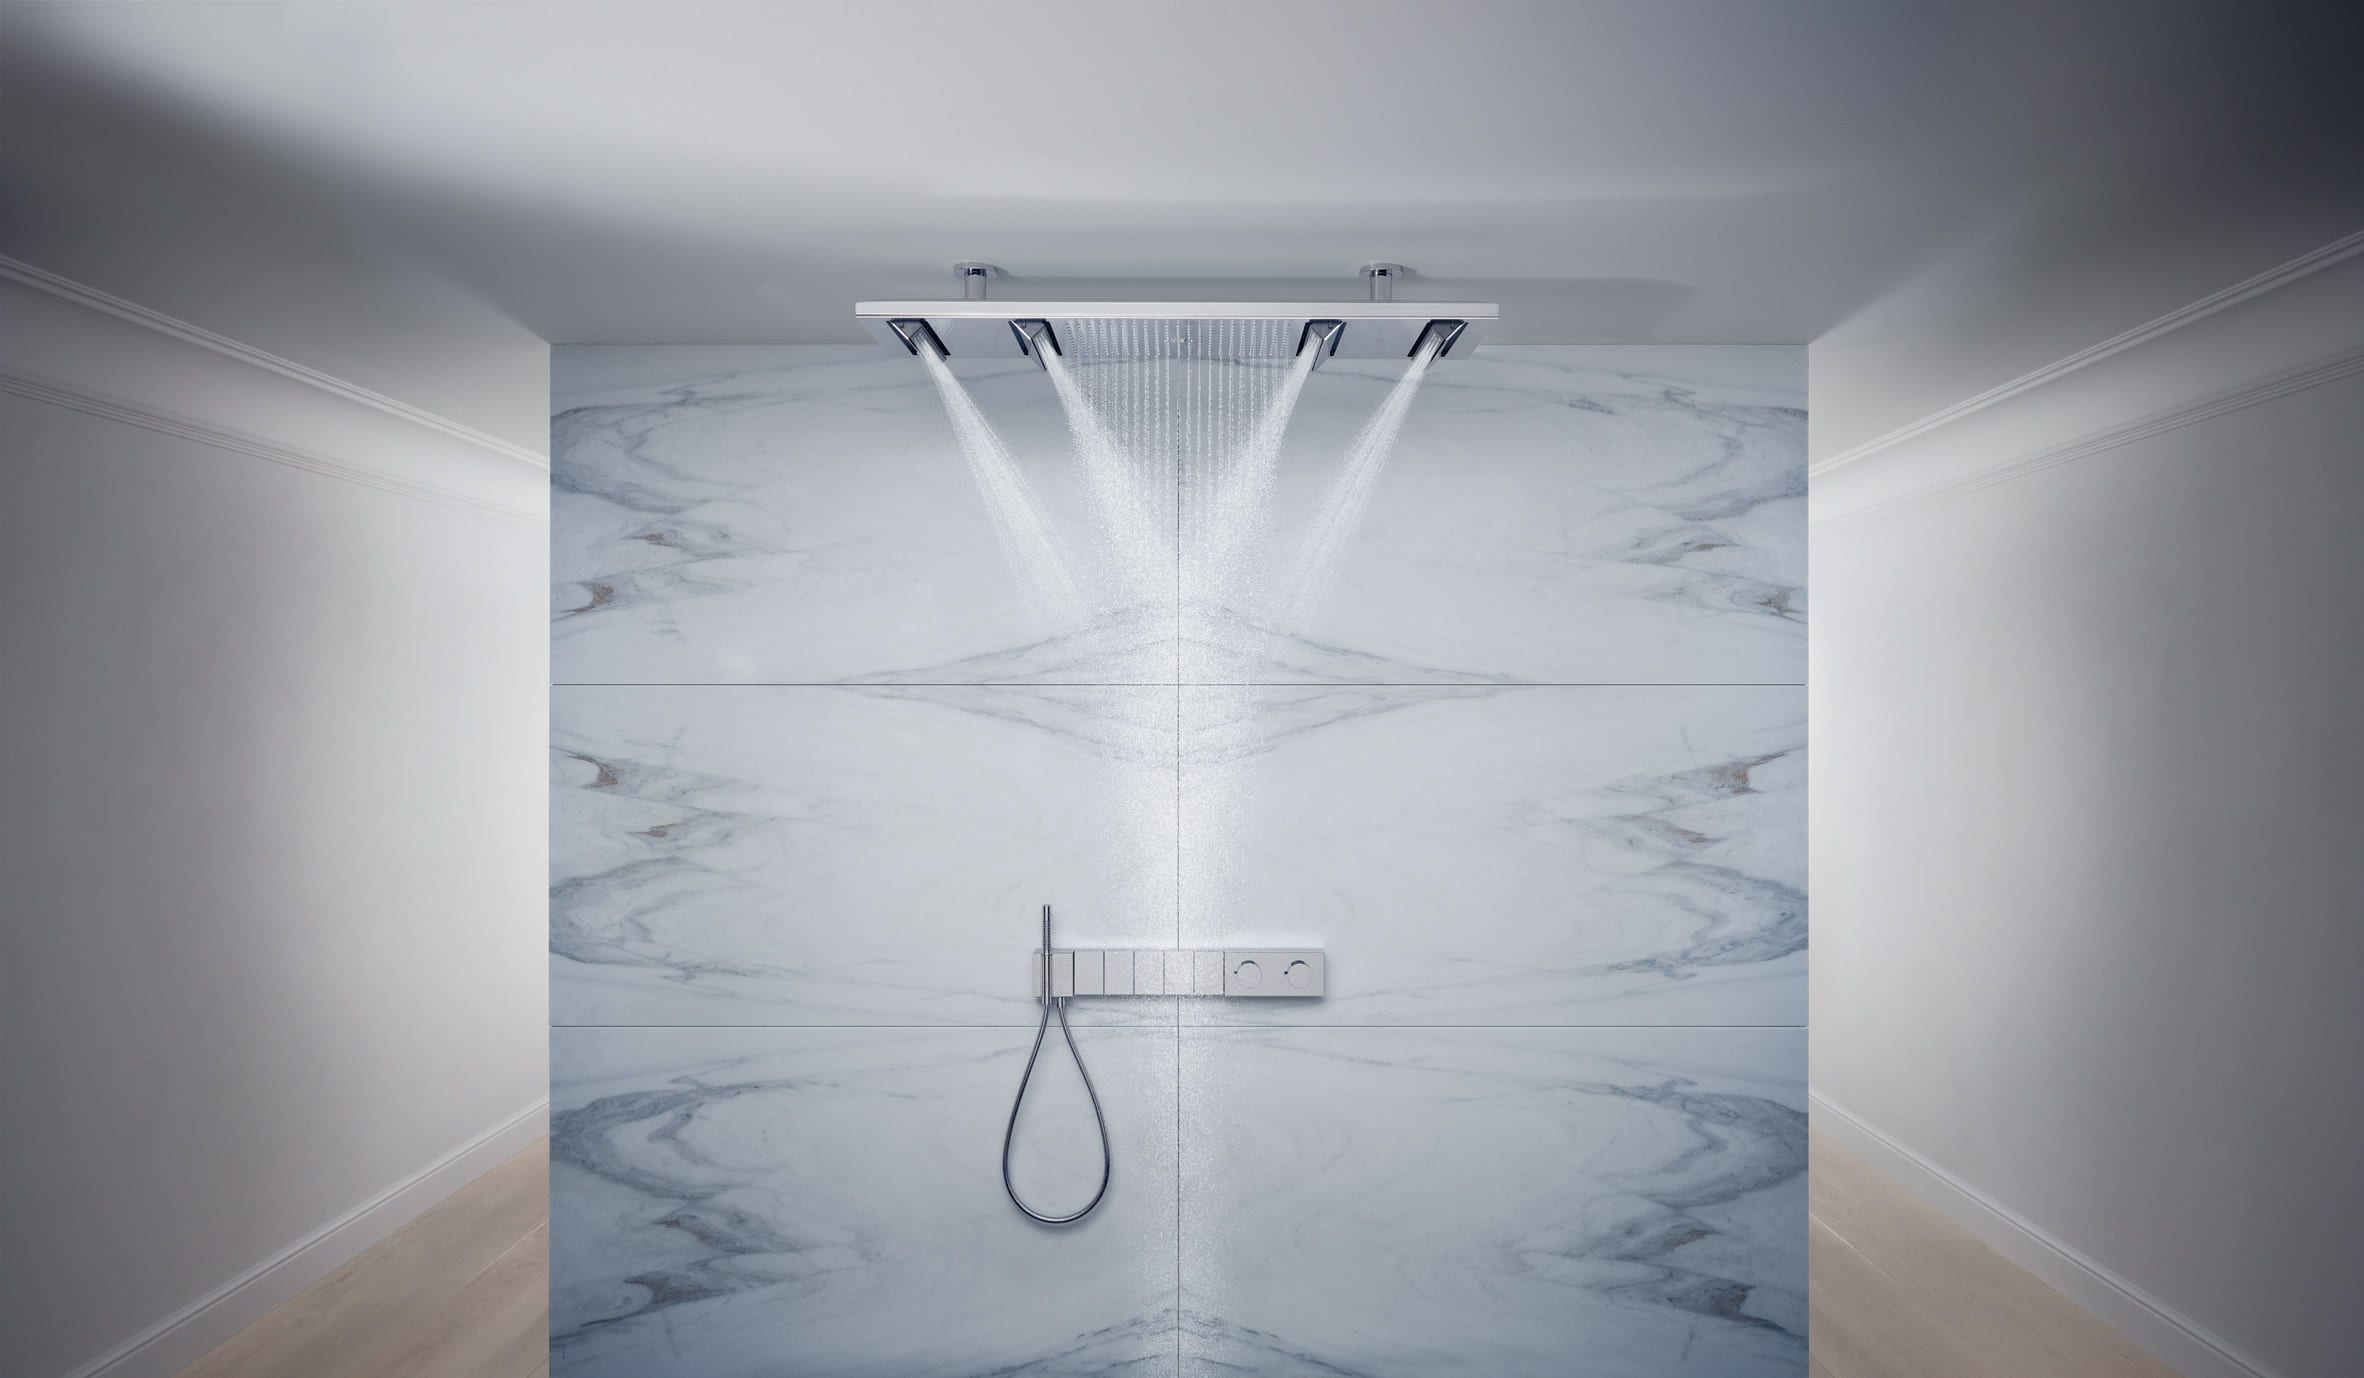 Axor Edge faucets by Jean-Marie Massaud for Axor